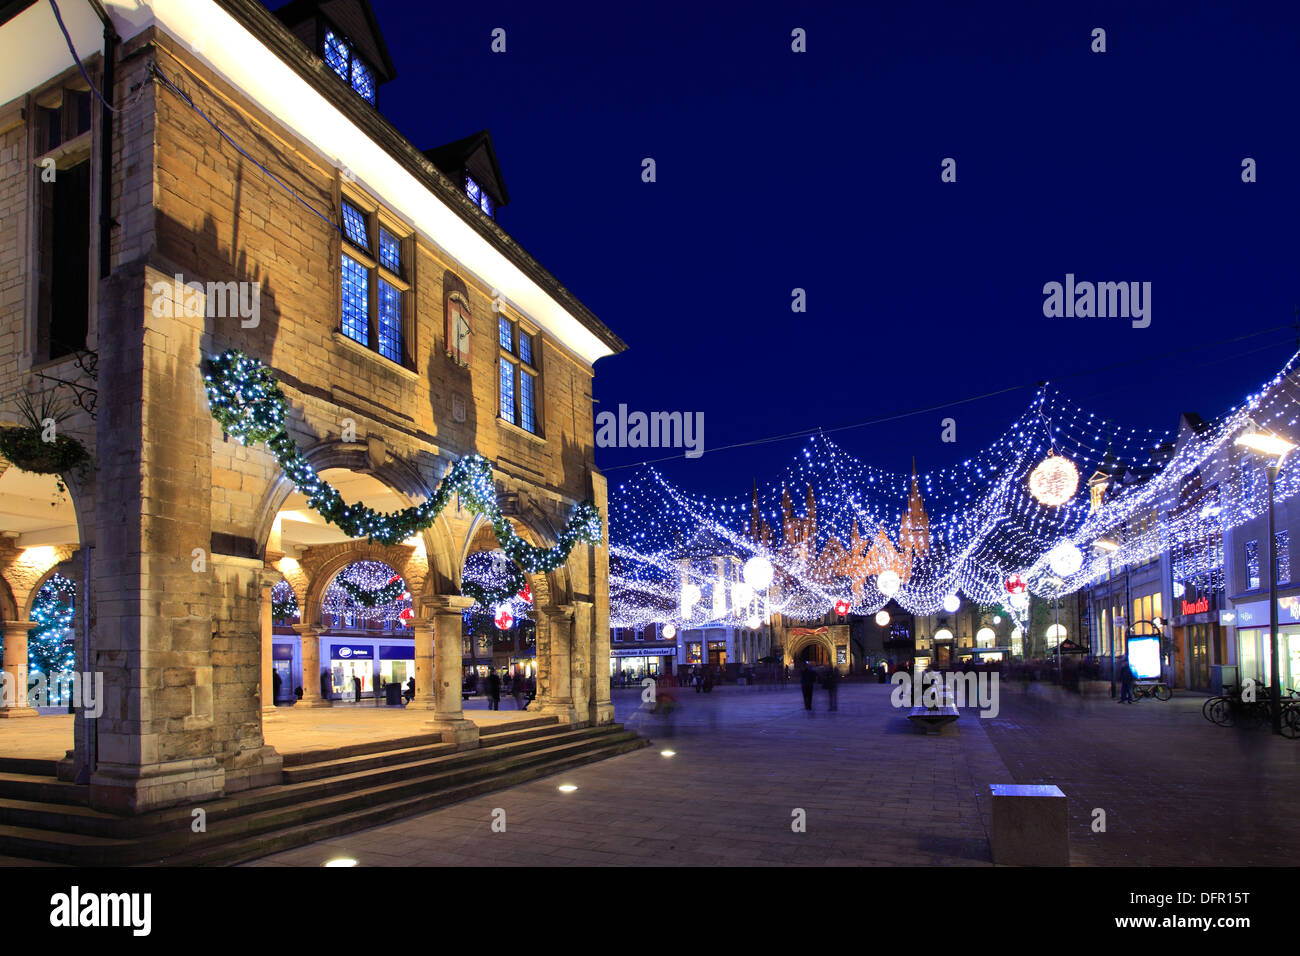 The Christmas lights decorations, the Guildhall, Cathedral Square, Peterborough City, Cambridgeshire, England, UK - Stock Image